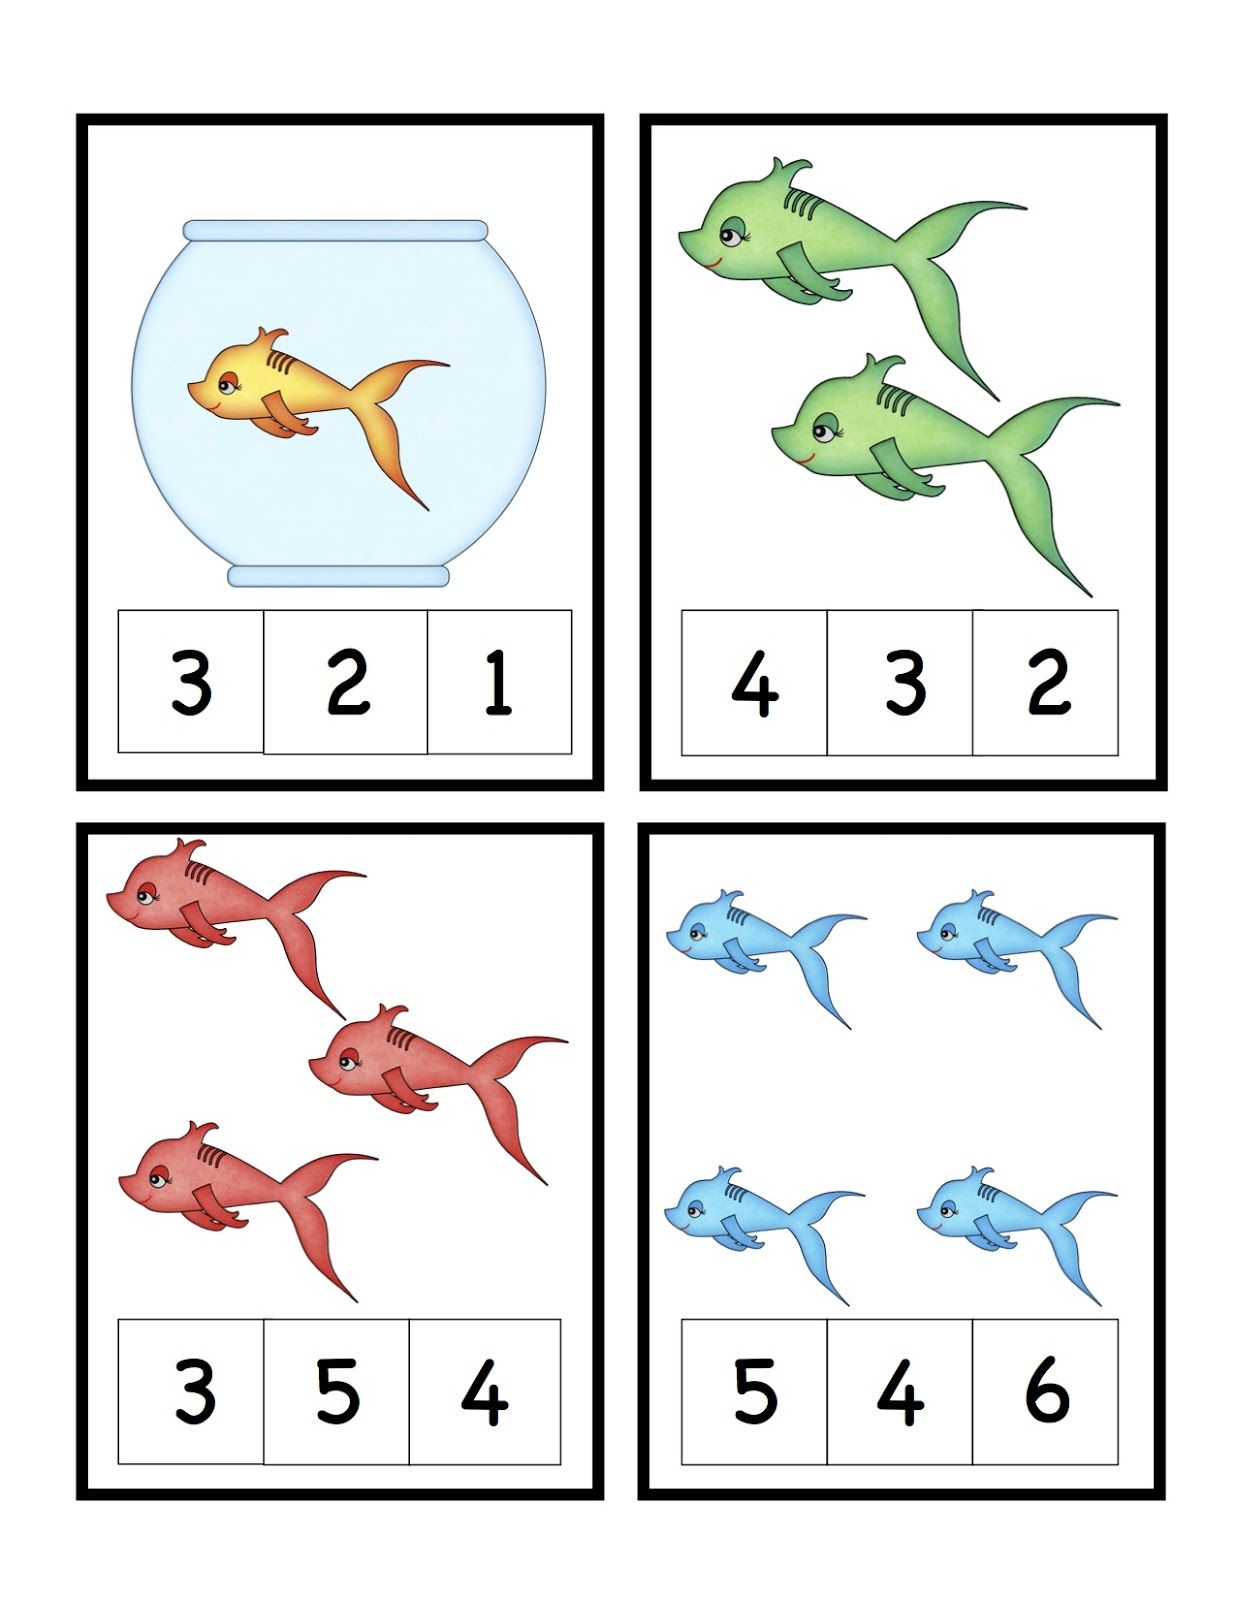 Fish Num Cards 1 4 1 236 1 600 Pixels